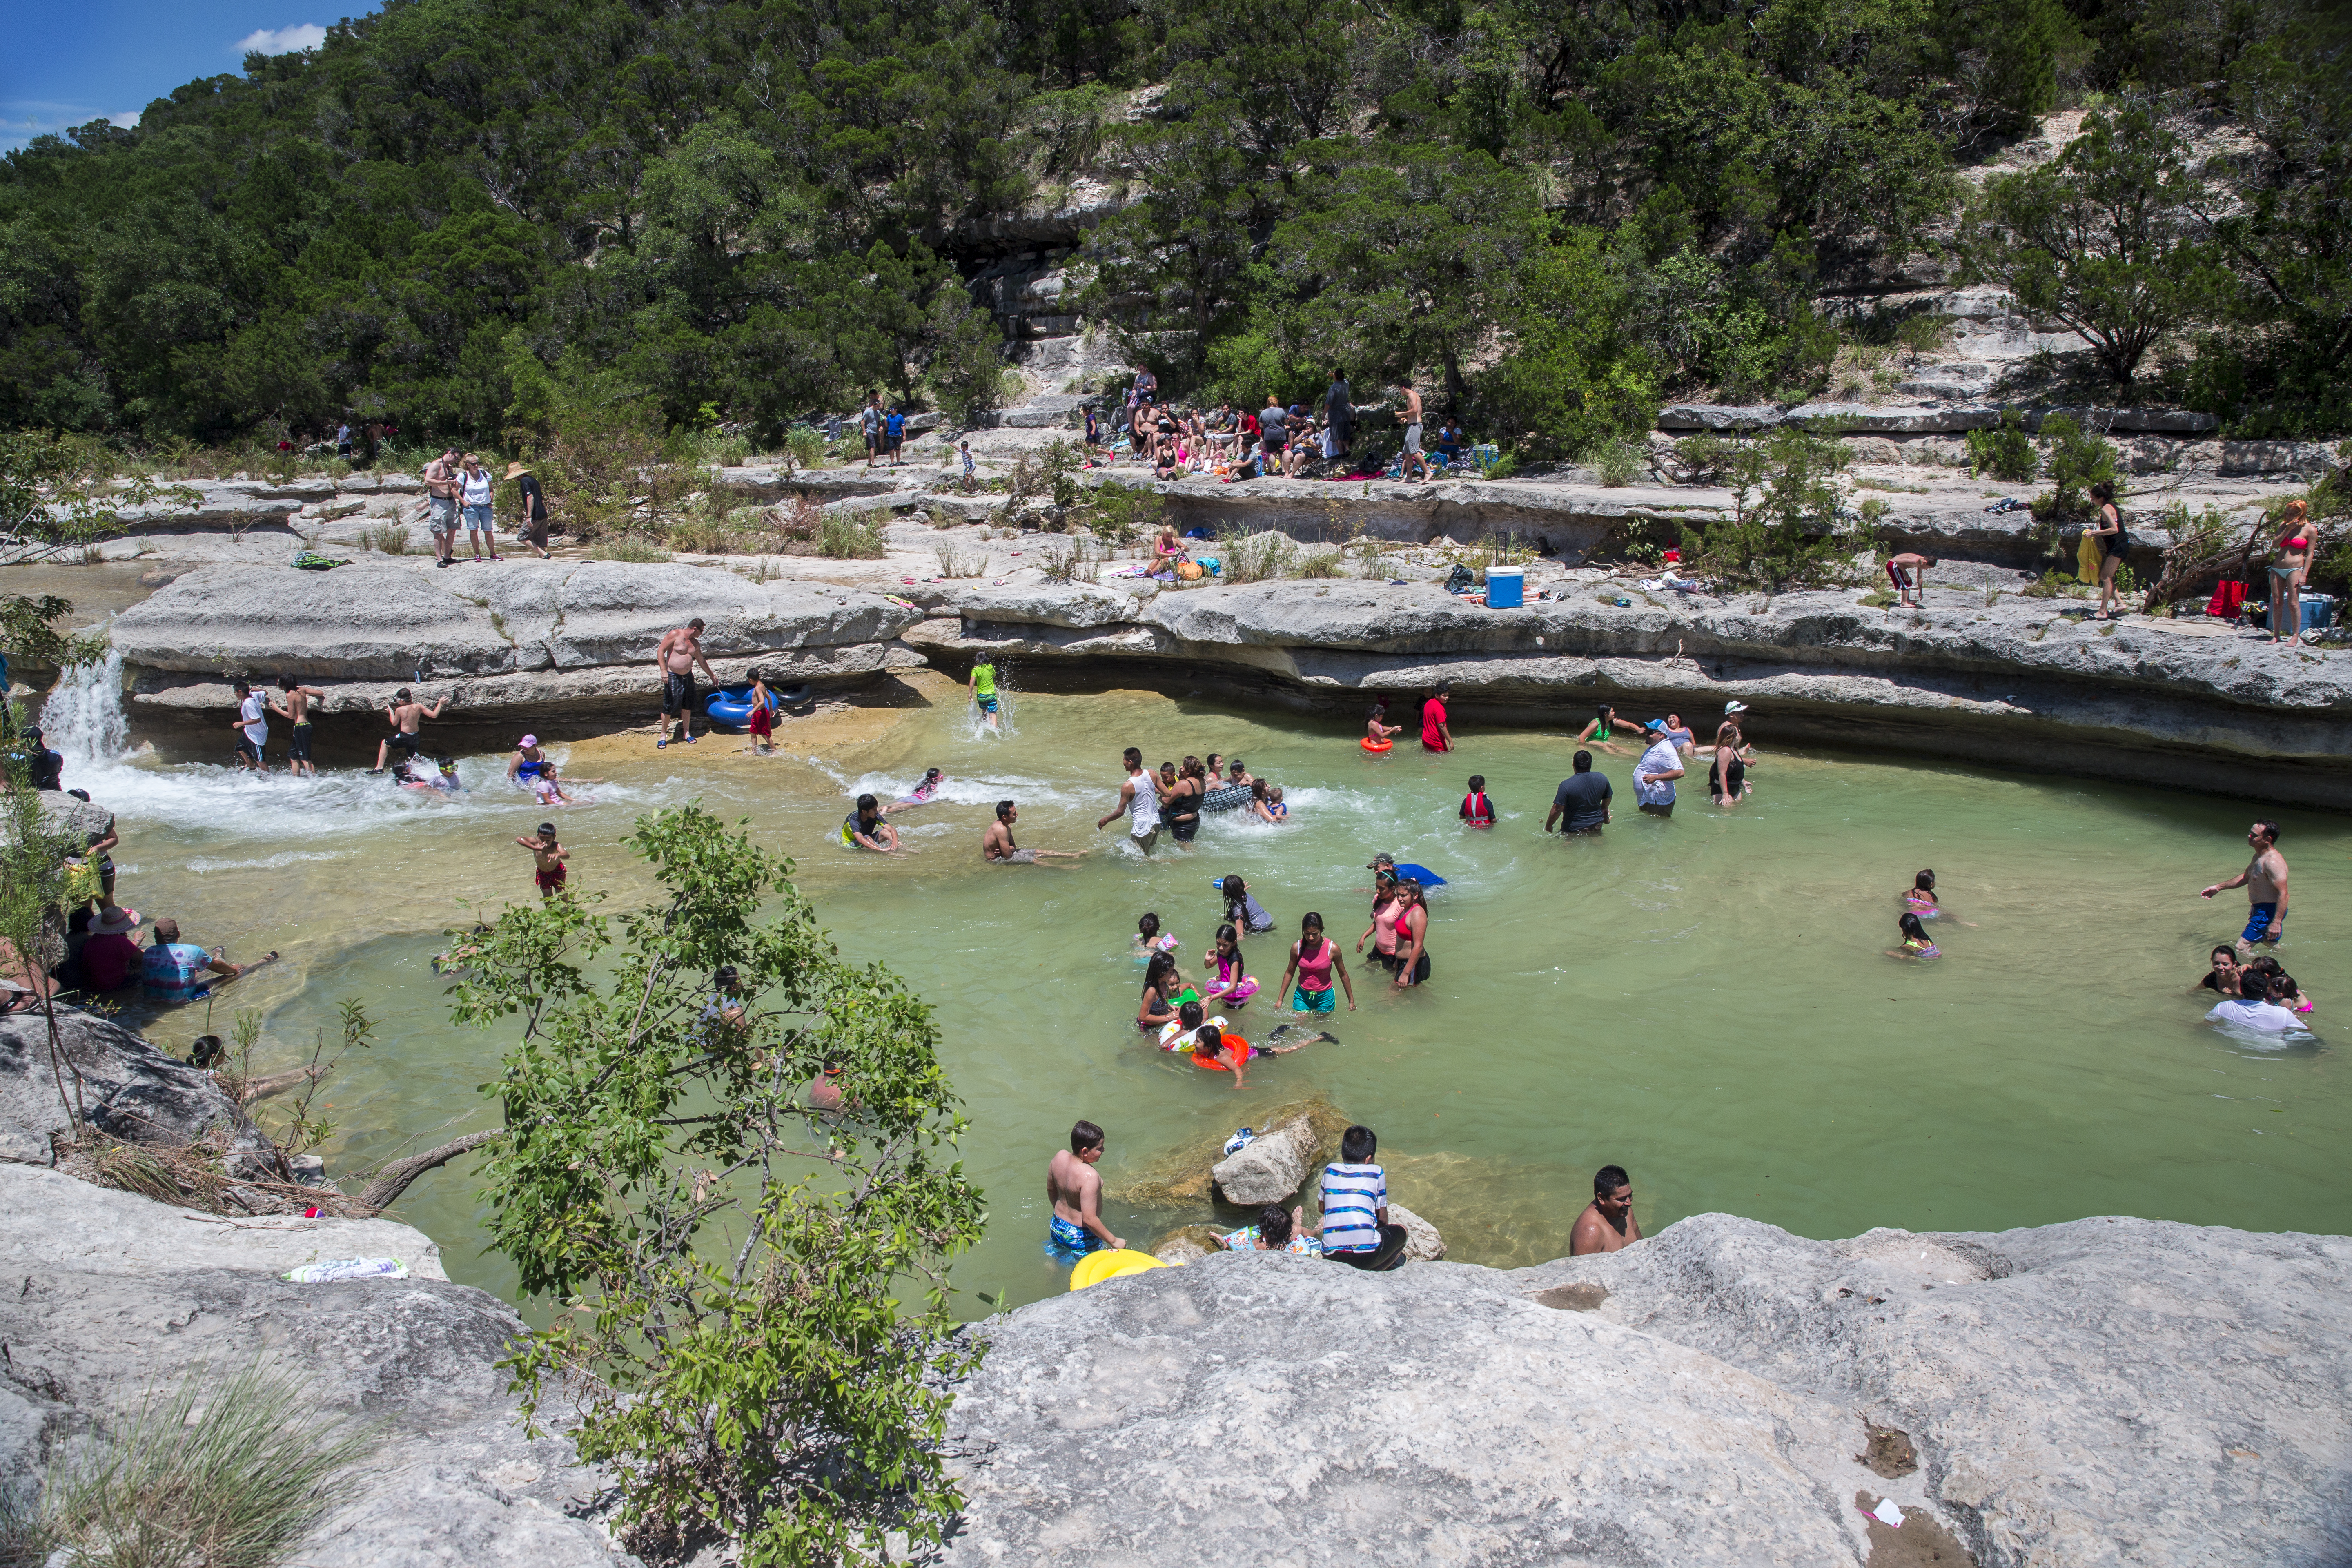 Bull Creek is listed as one of Austin's best swimming holes